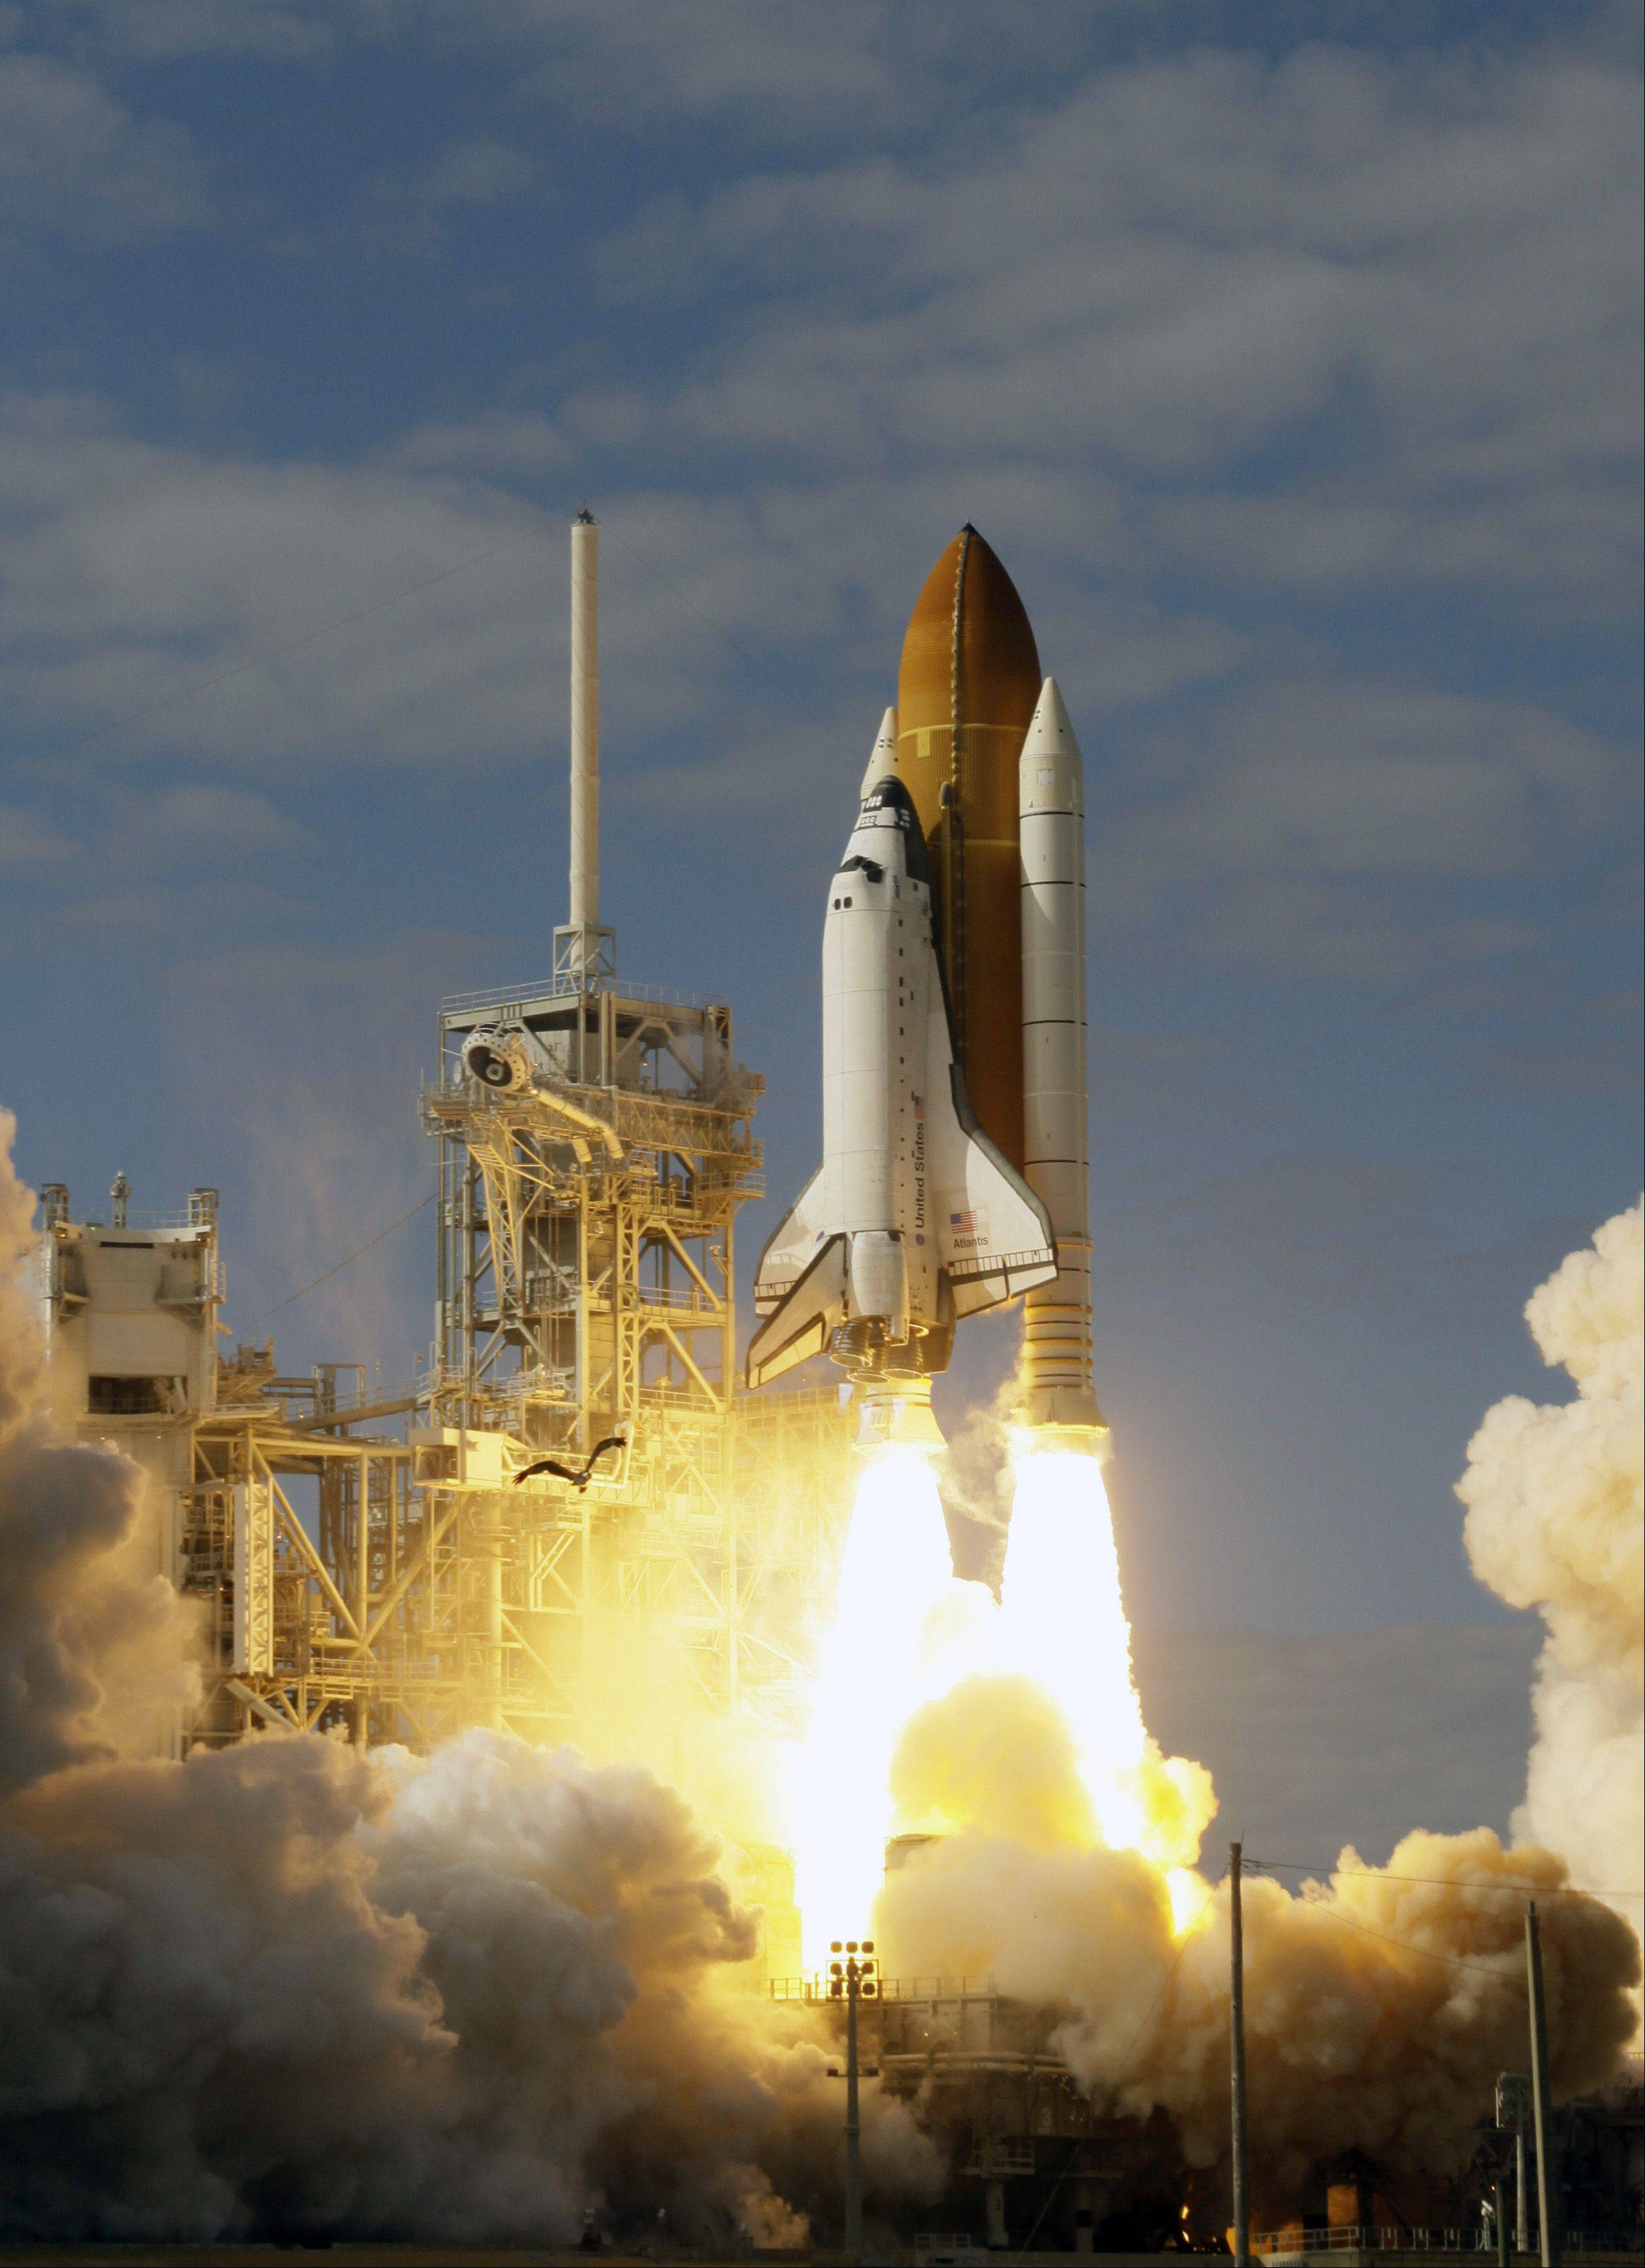 Space shuttle Atlantis lifts off from pad 39A at the Kennedy Space Center in Cape Canaveral, Fla. The Atlantis and Endeavor shuttles carried several experiments proposed by students into space, including ones intended to investigate the effects of microgravity on various organisms.